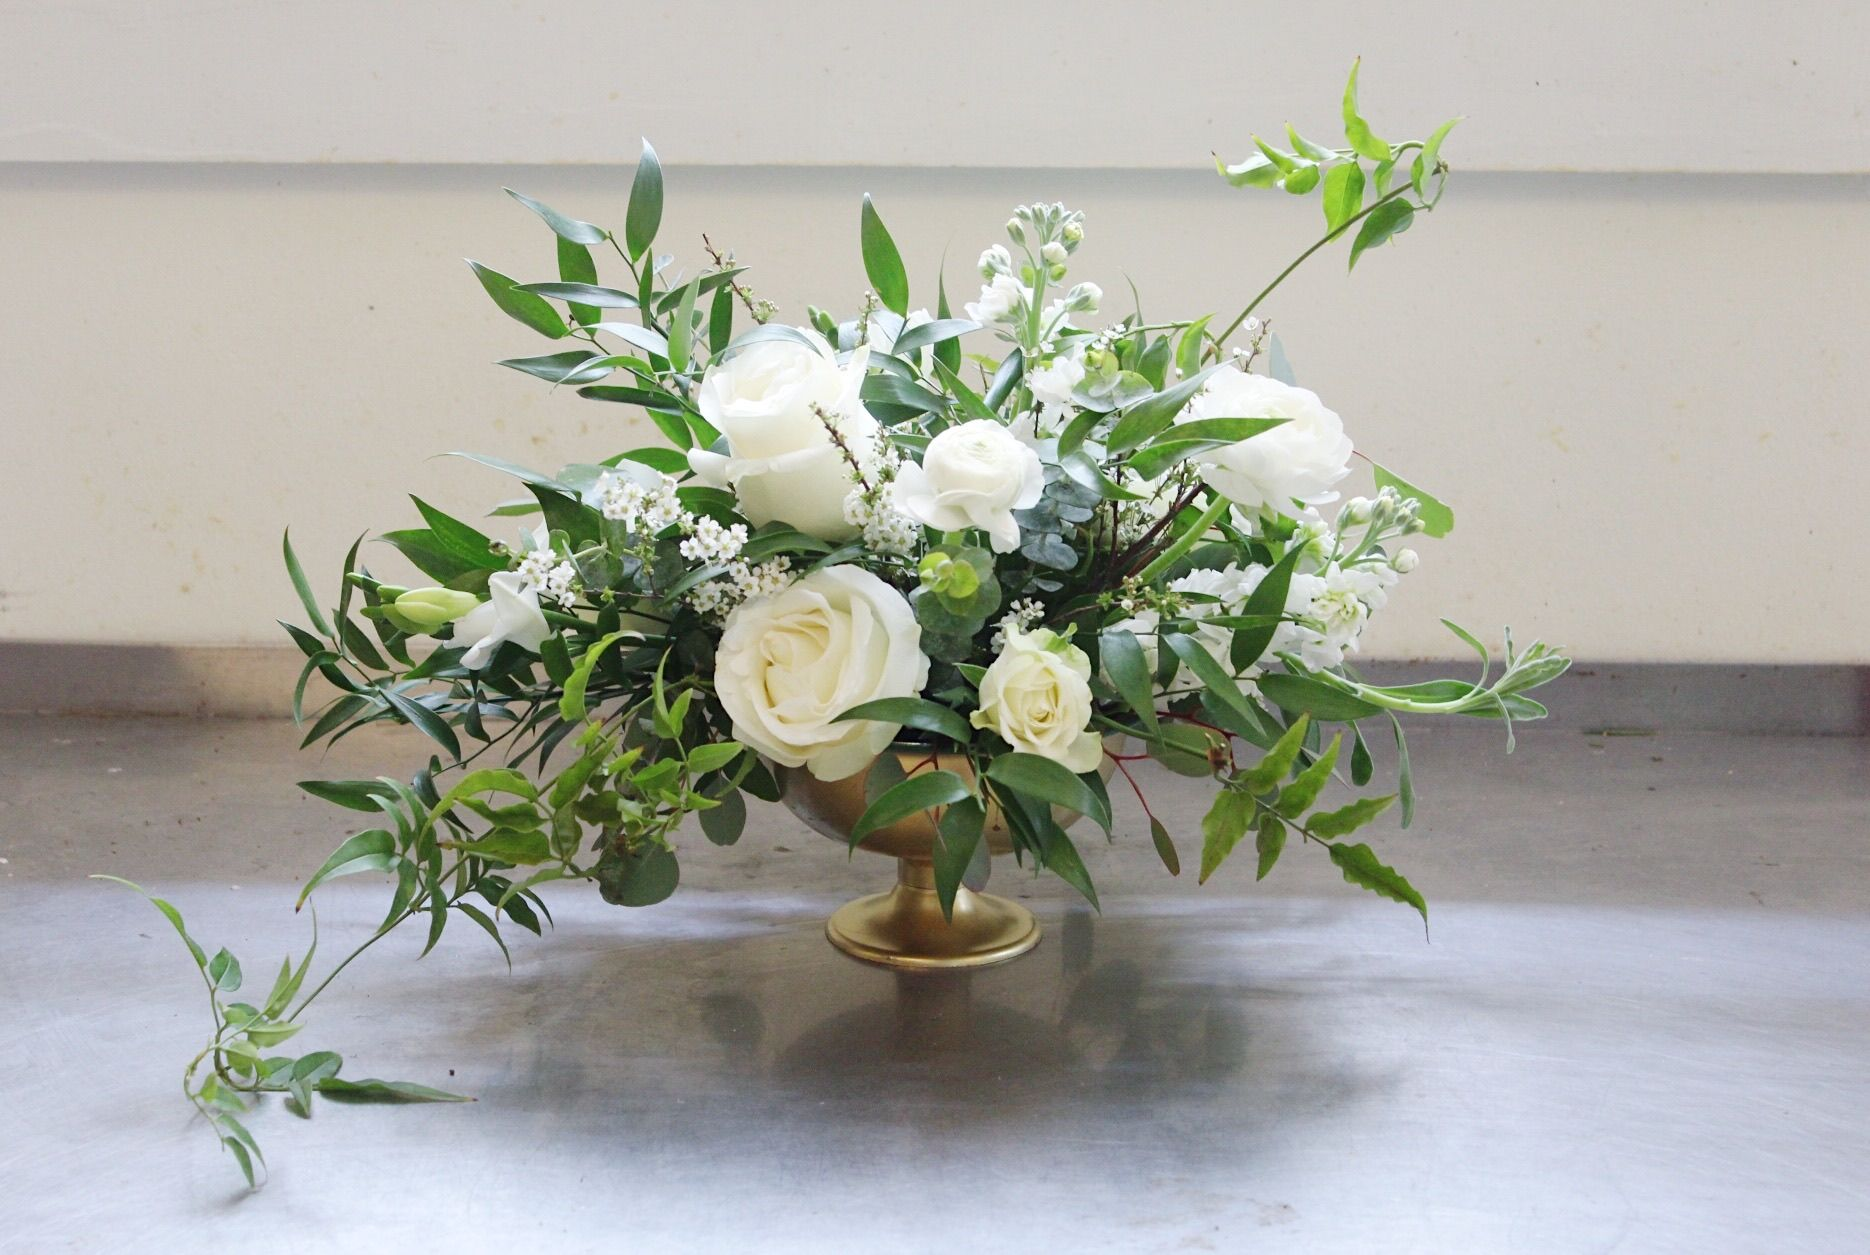 Trailing Greenery With White Roses, Ranunculus, And Stock In A